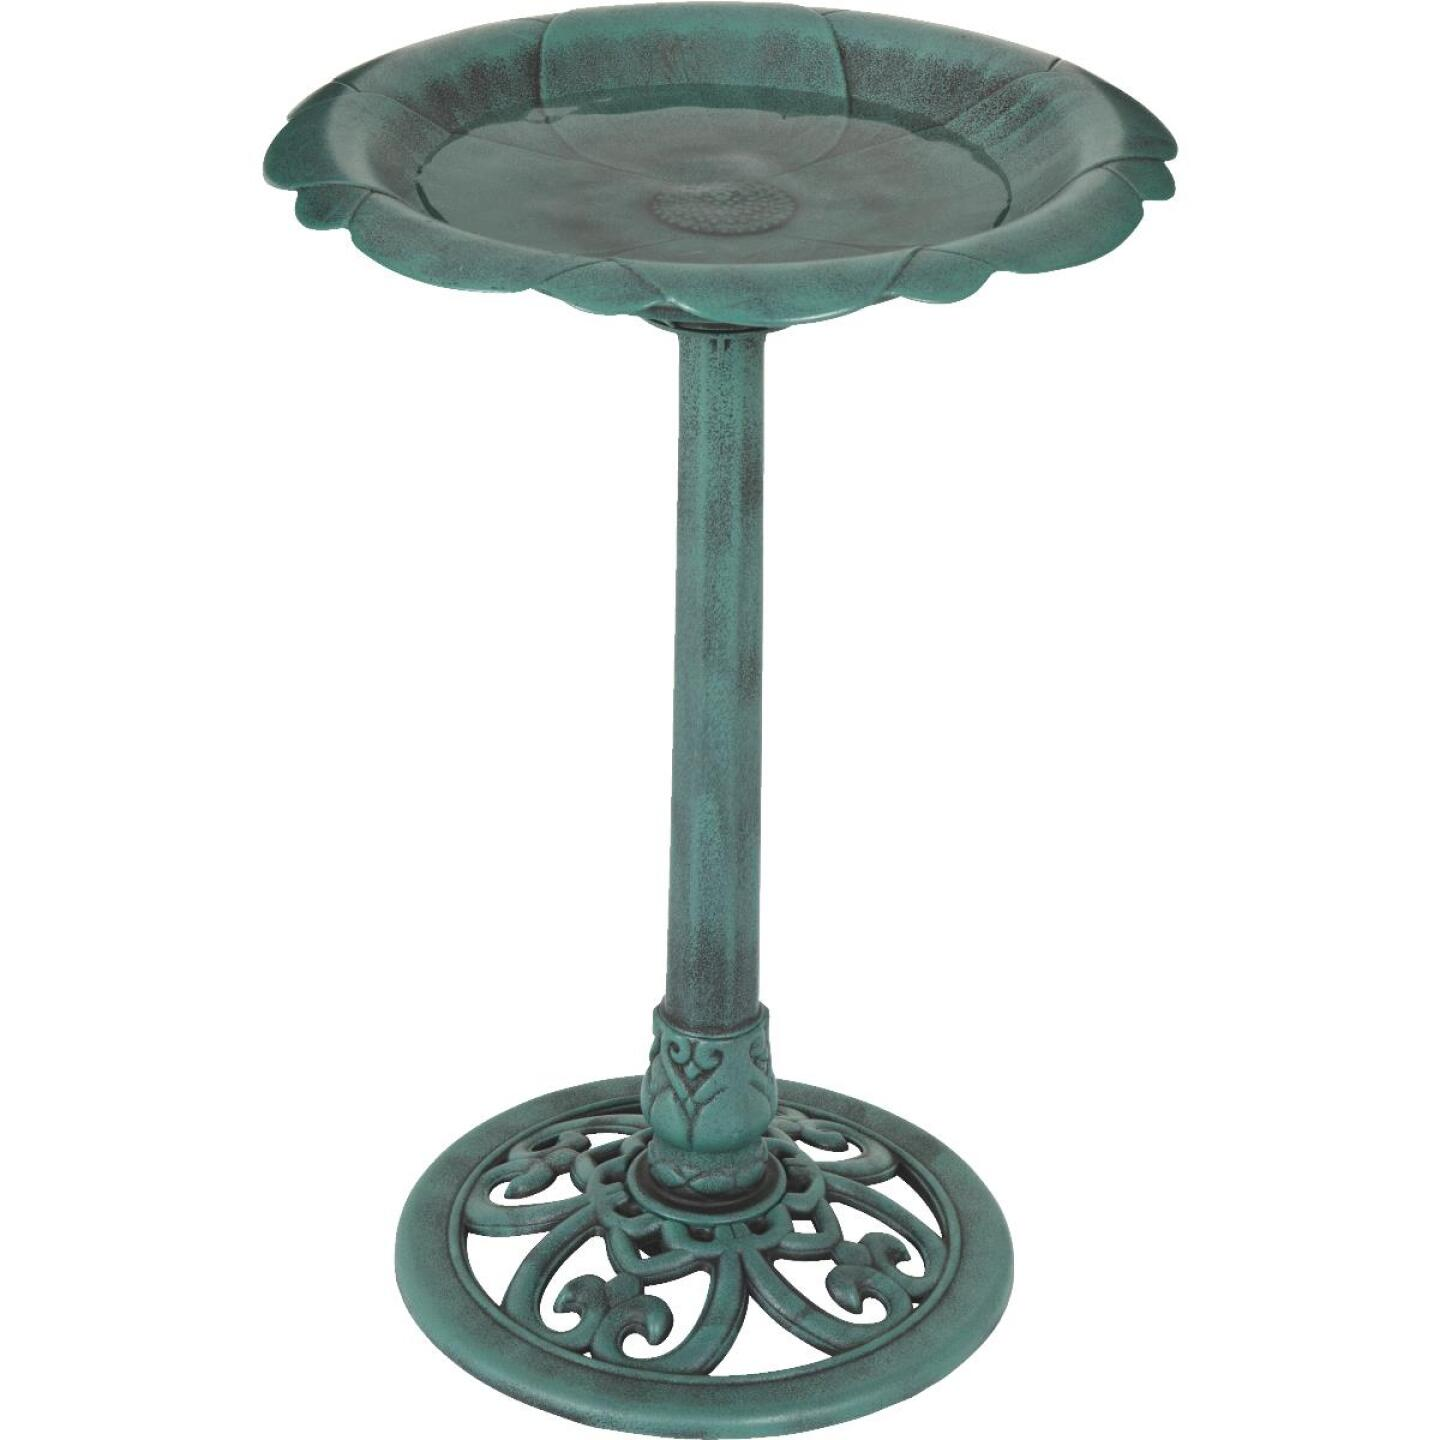 Best Garden Antique Verdigris Flower Pedestal Bird Bath Image 8